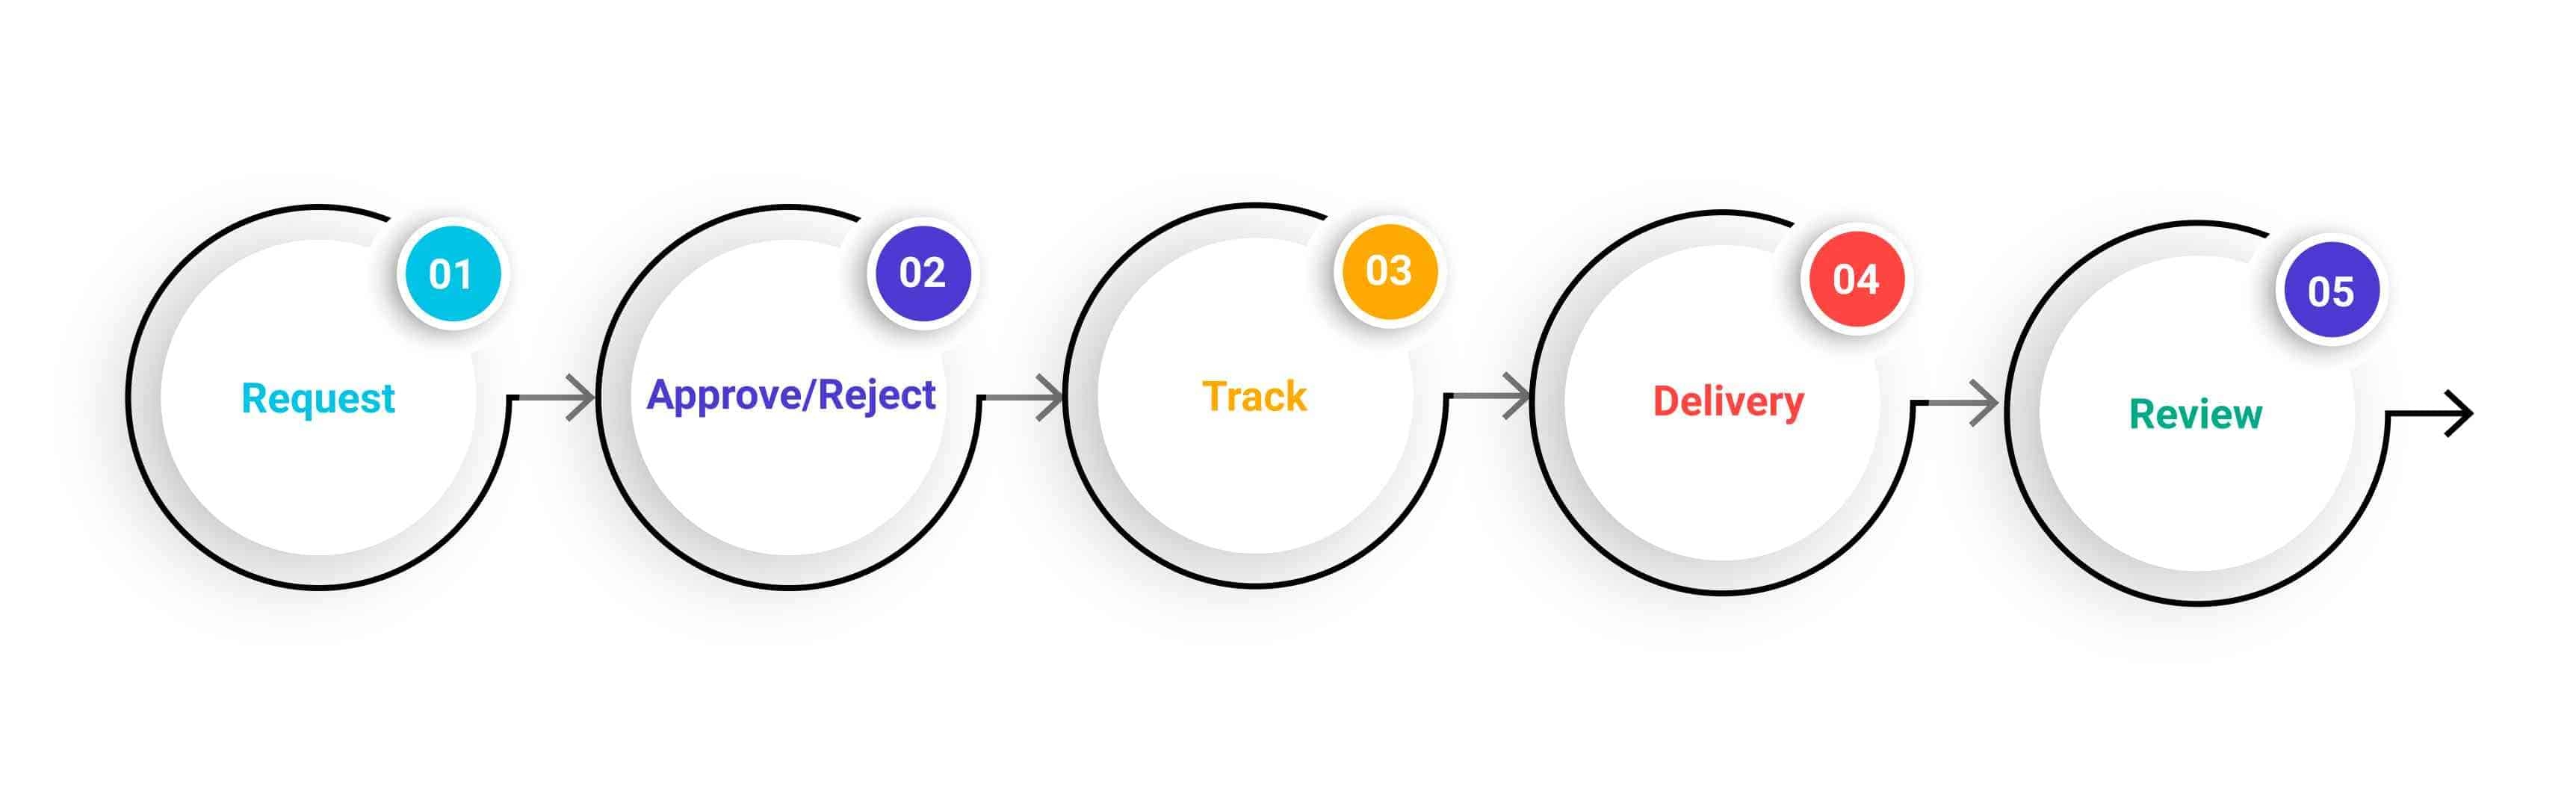 execution flow of an on demand app